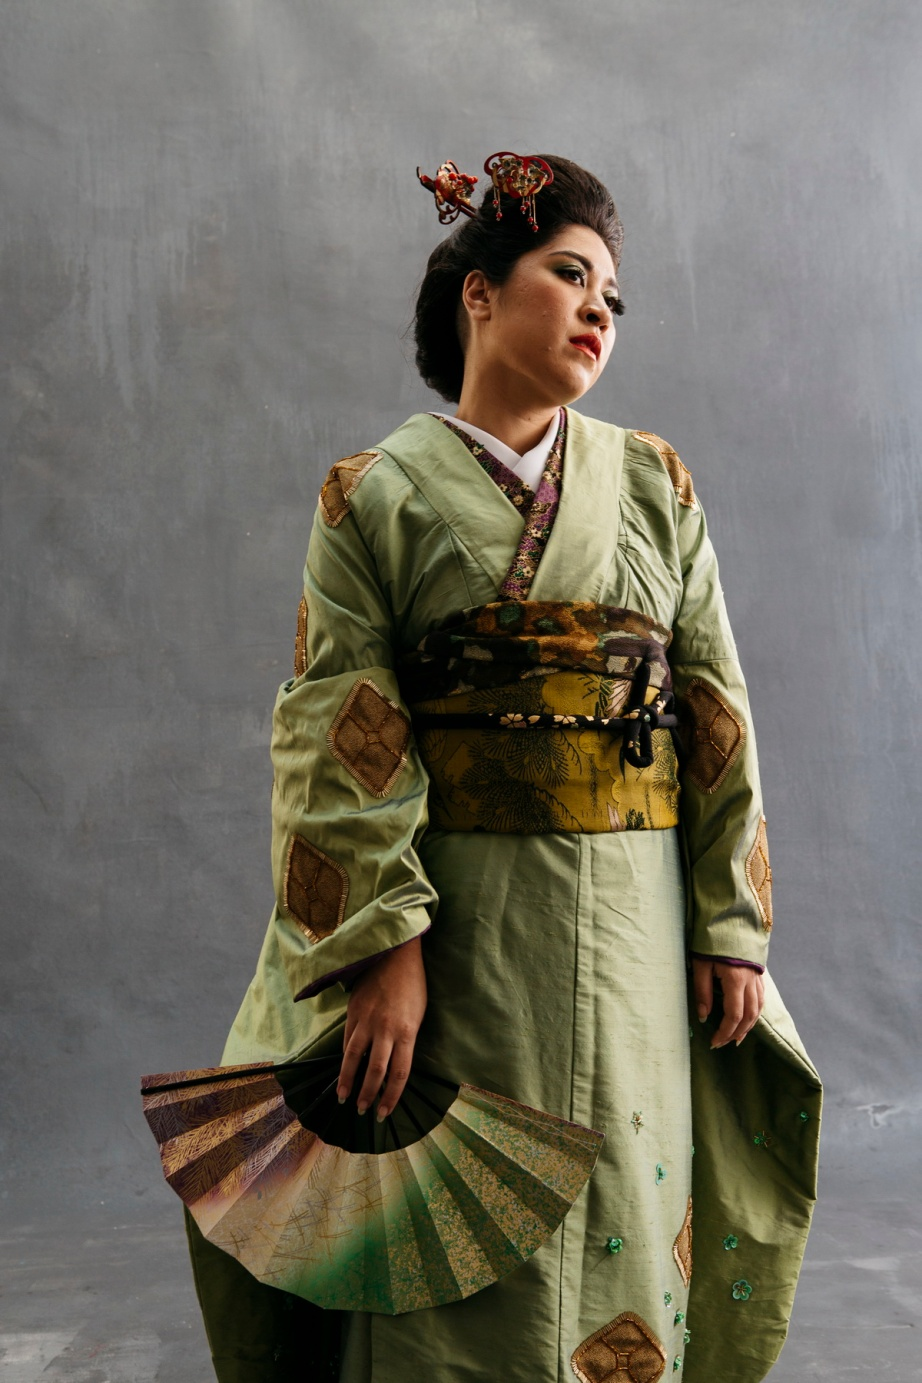 fashion photographer orange county nicole caldwell 03 traditional kimono